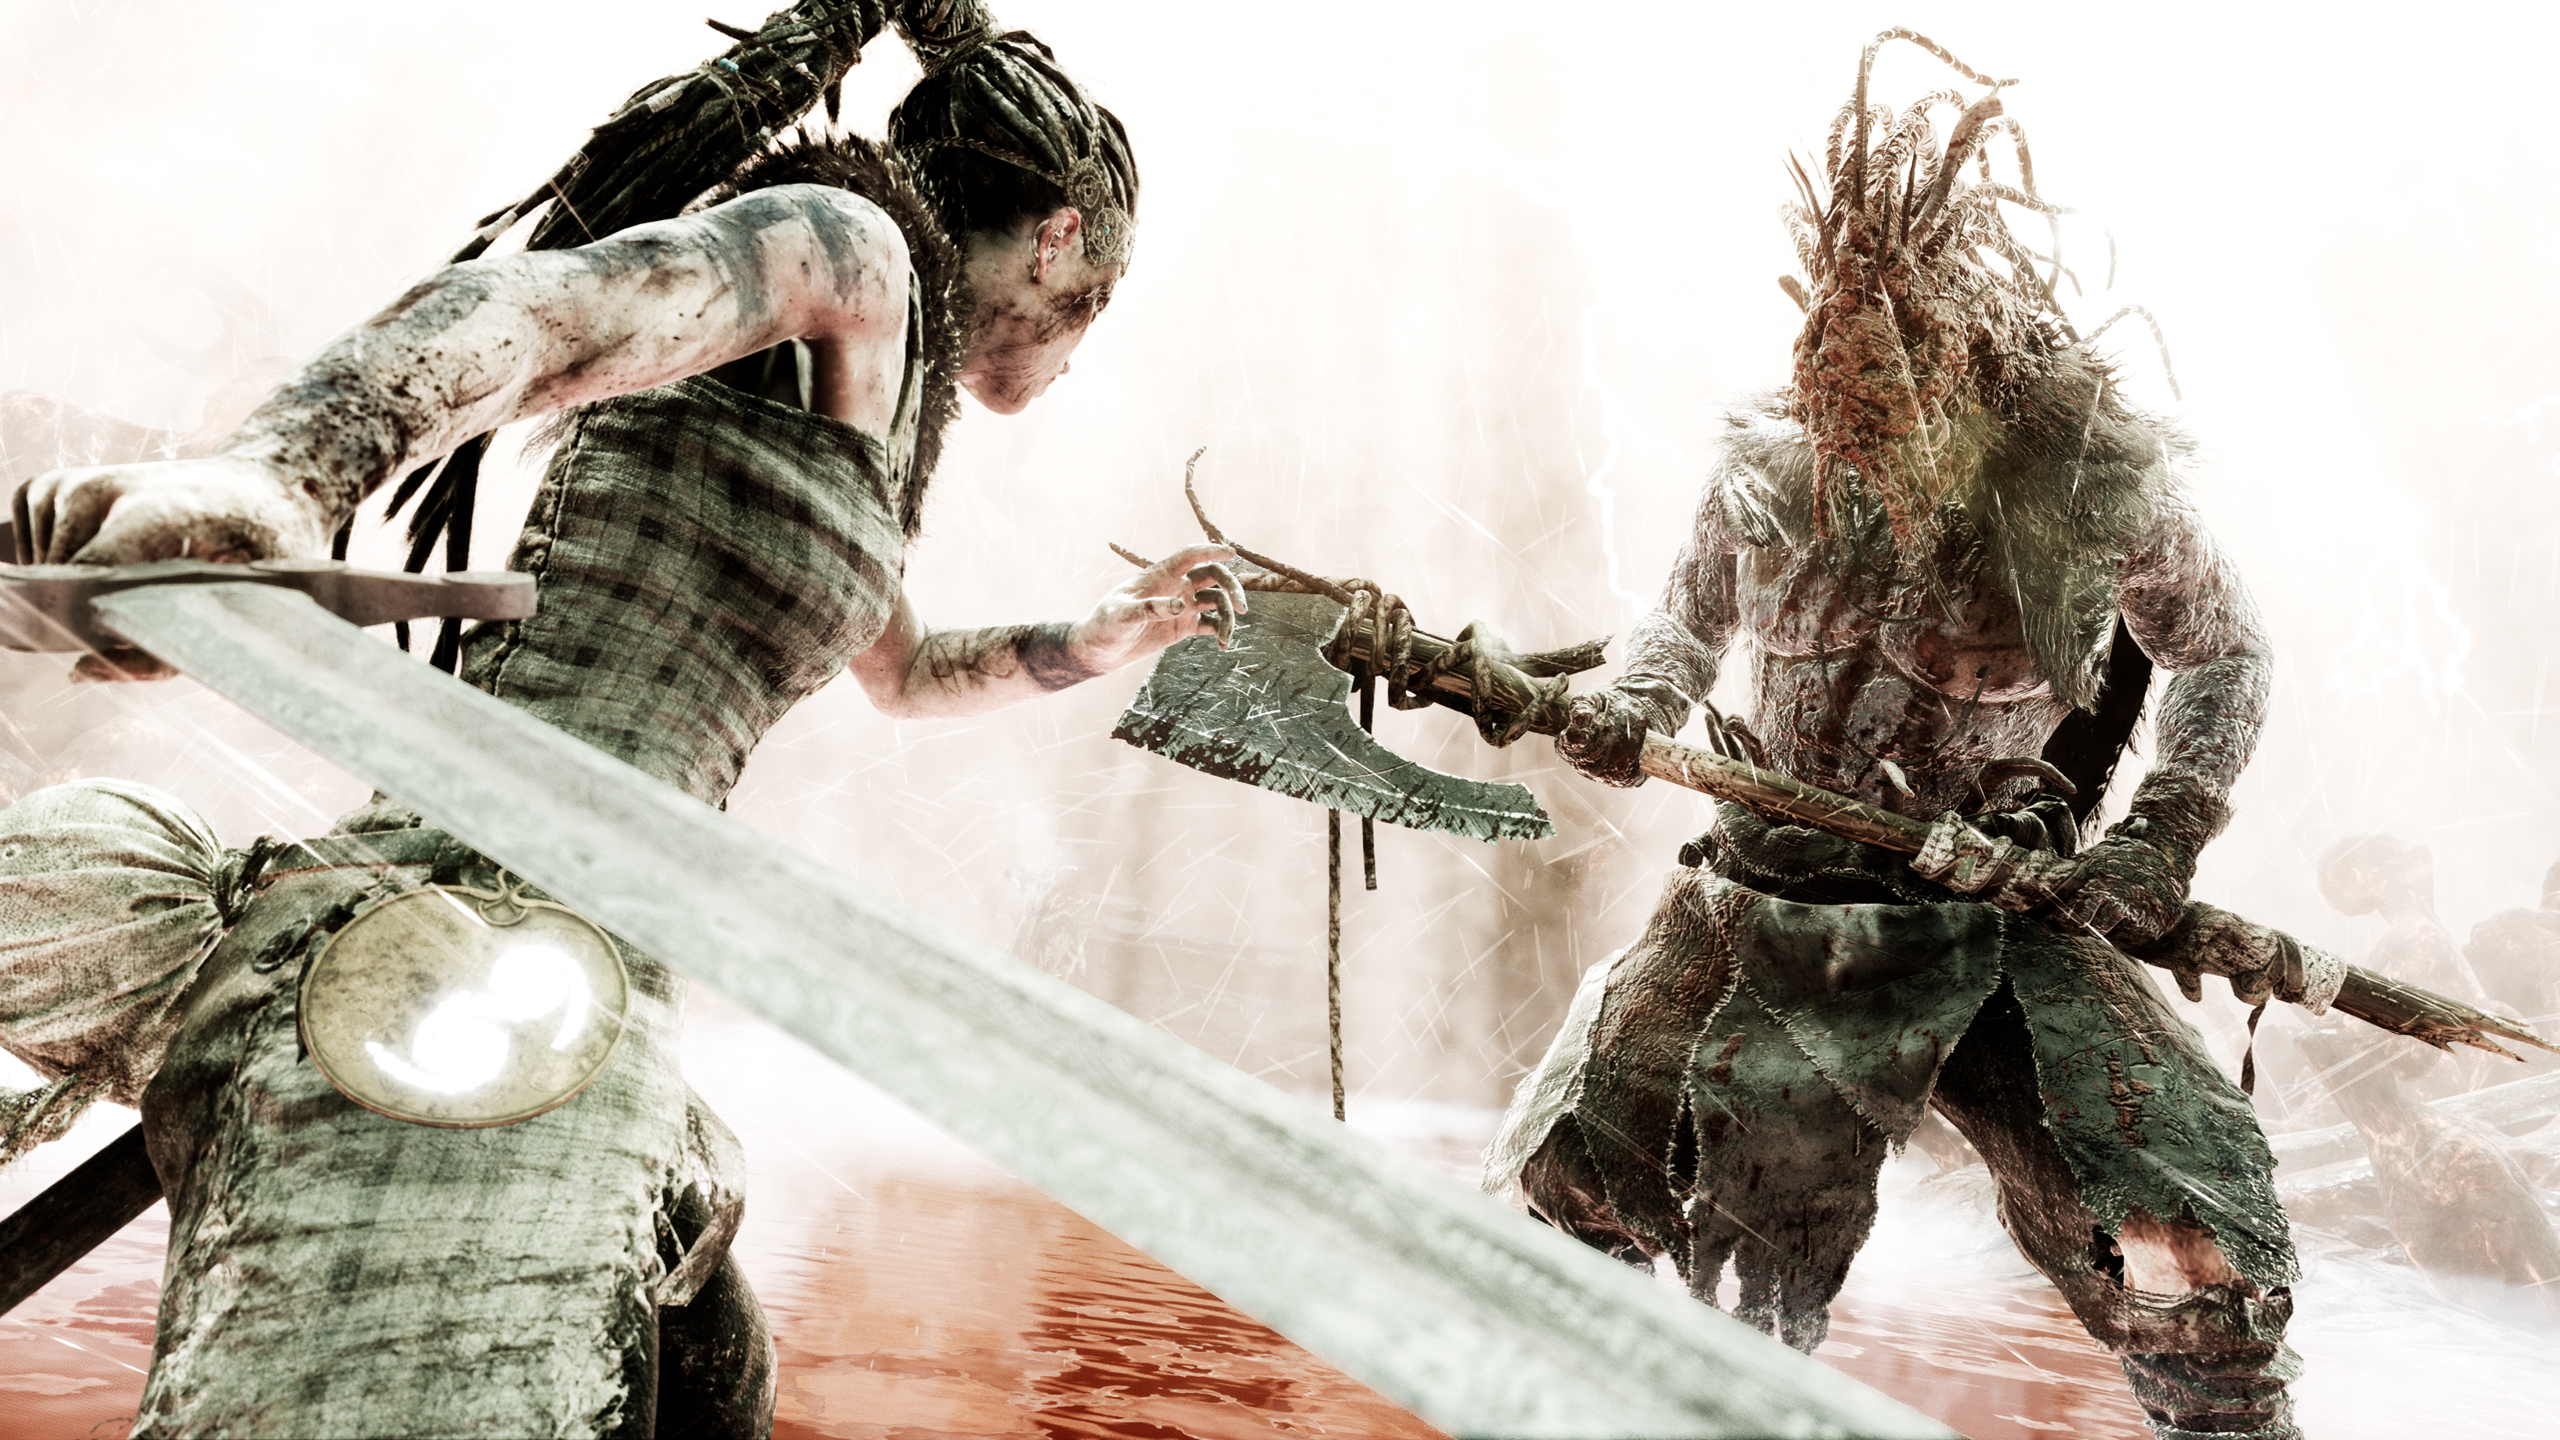 Hellblade senuas sacrifice how to defeat every boss combat guide the deadly bosses of hellblade senuas sacrifice dont go down without a fight and here were going to provide a few tips and tricks to help you overcome solutioingenieria Image collections